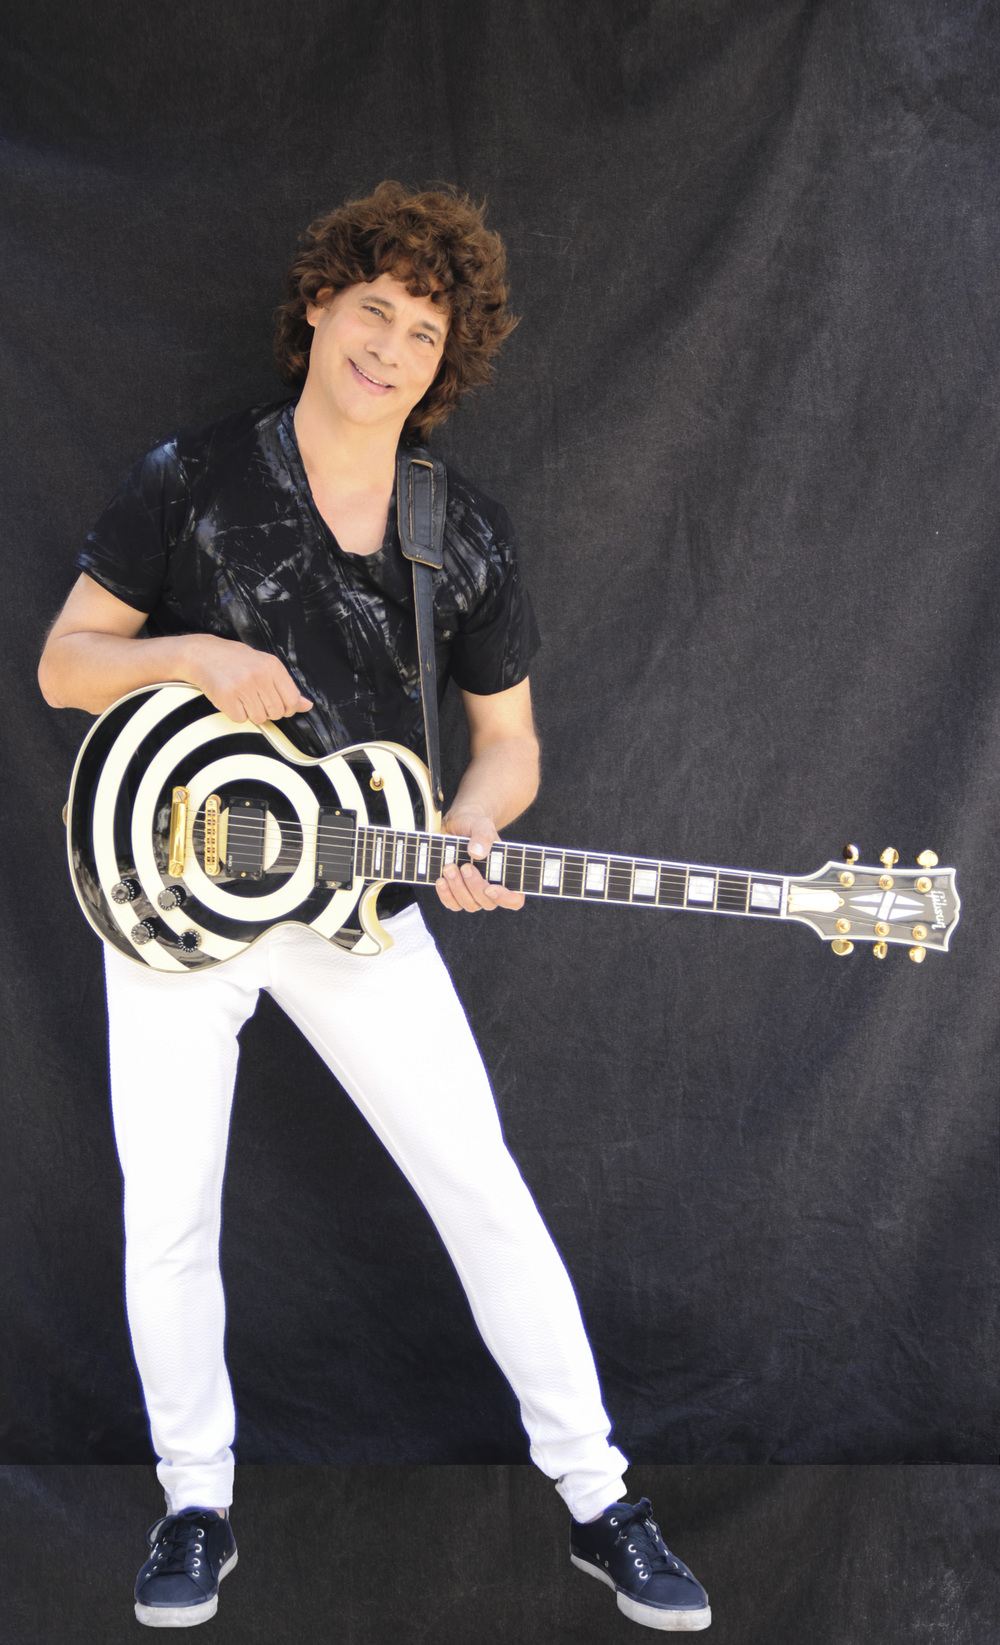 SMS.Black&White Guitar.Smiling.Black Floor.0739.2015.jpg